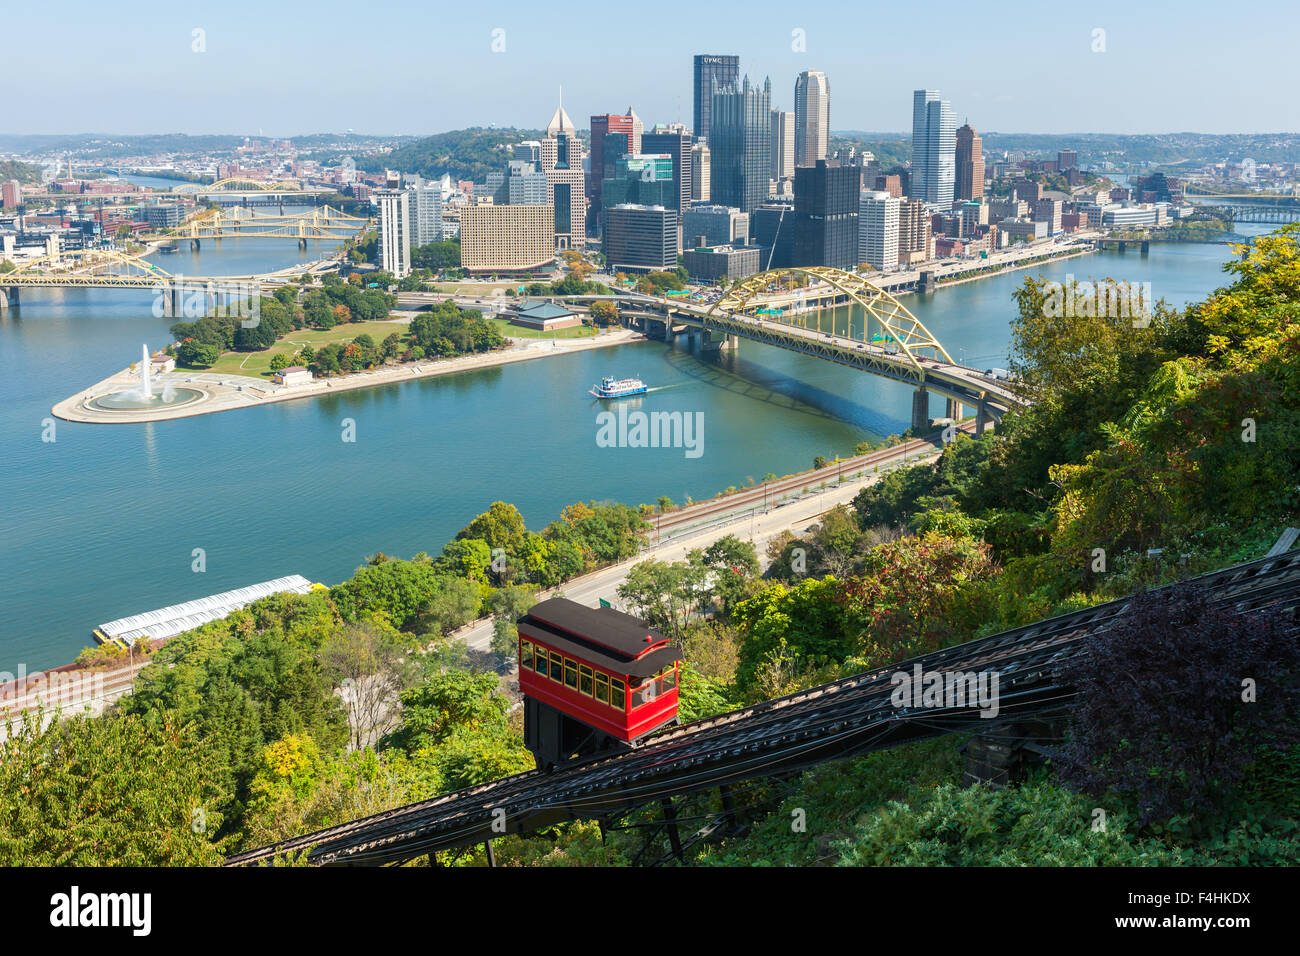 The Duquesne incline descends from Mt. Washington, with the skyline in the background in Pittsburgh, Pennsylvania. - Stock Image